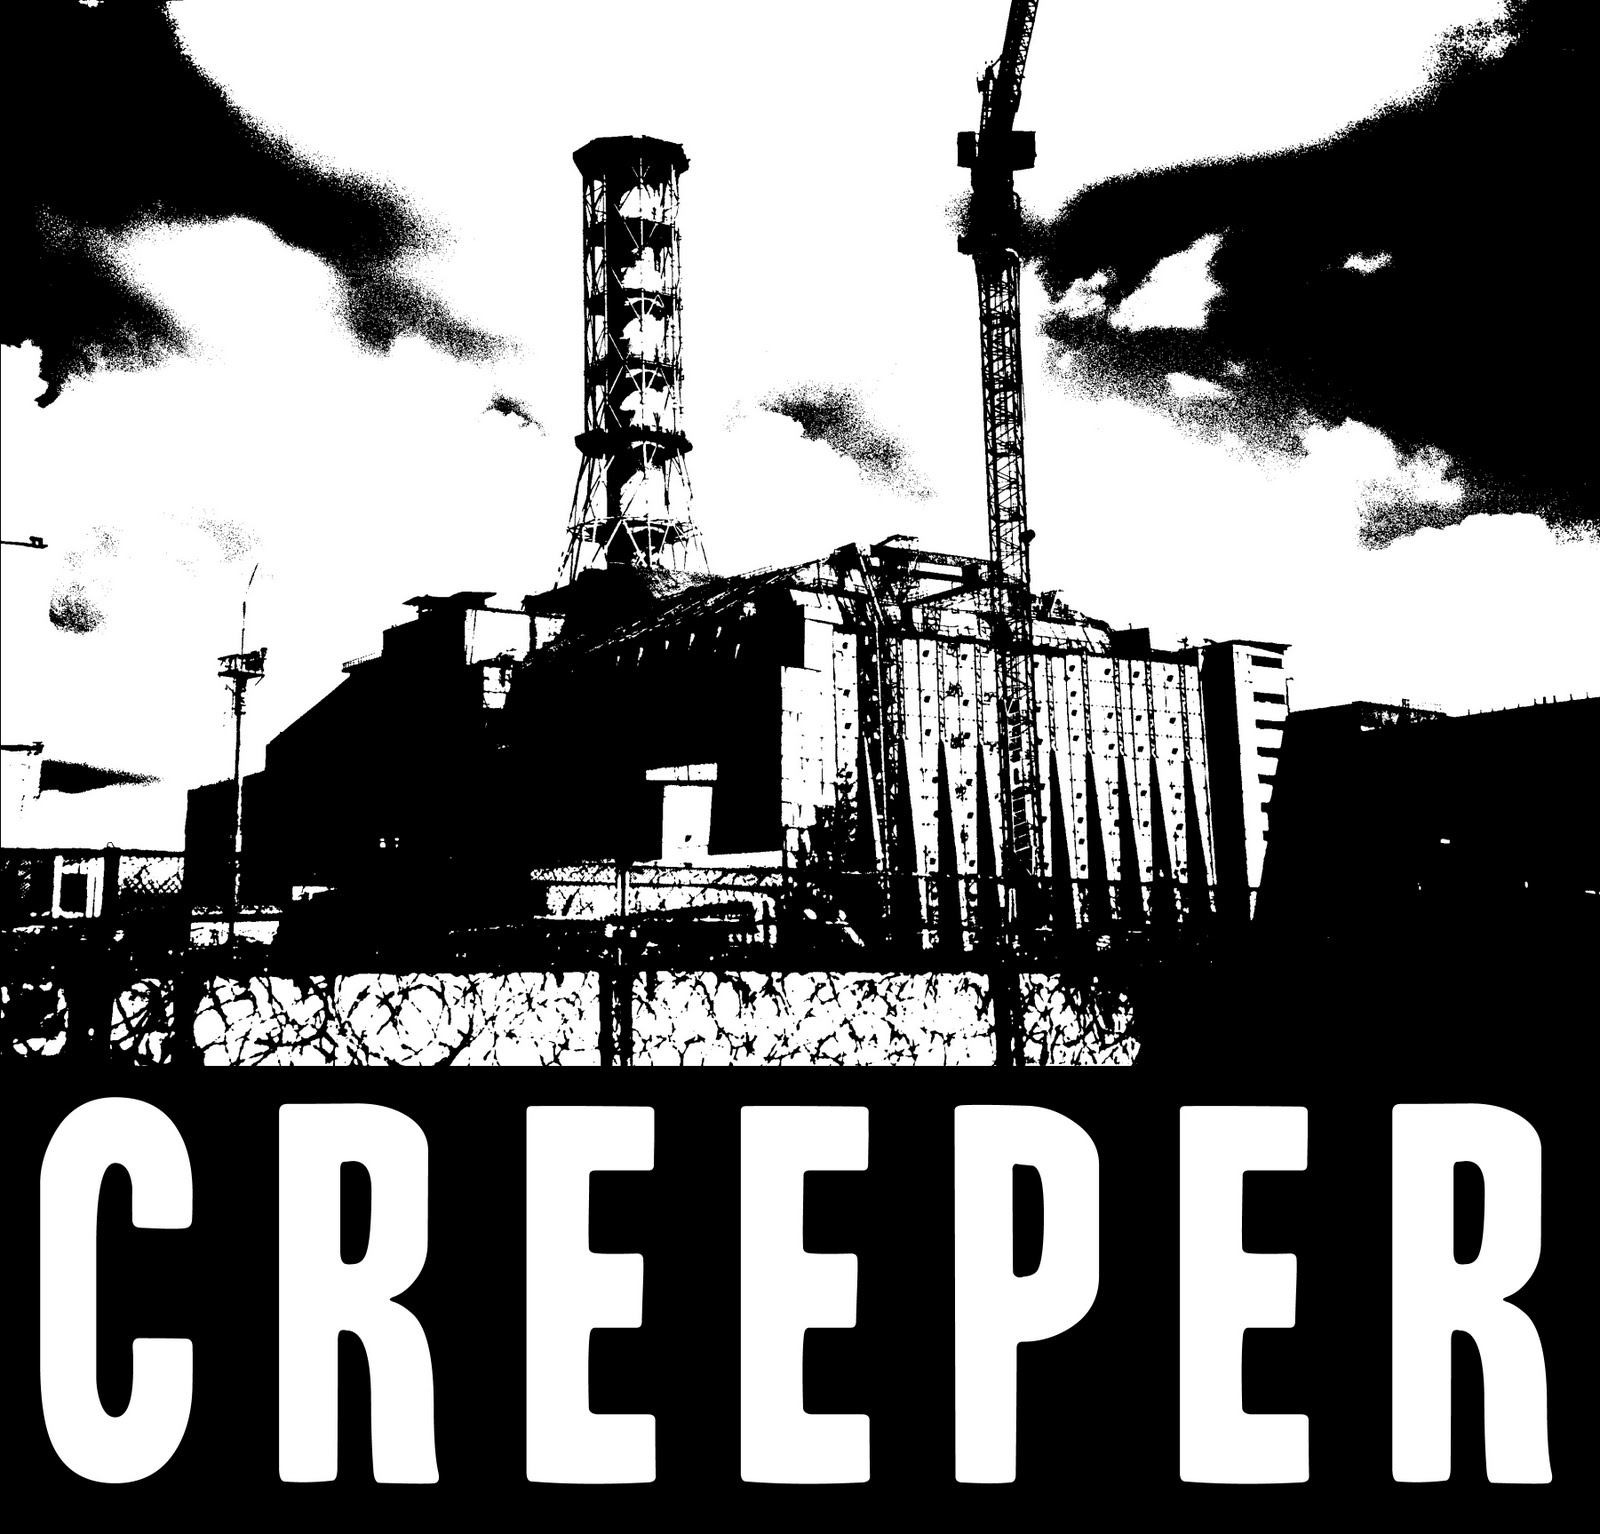 FUCK CREEPER